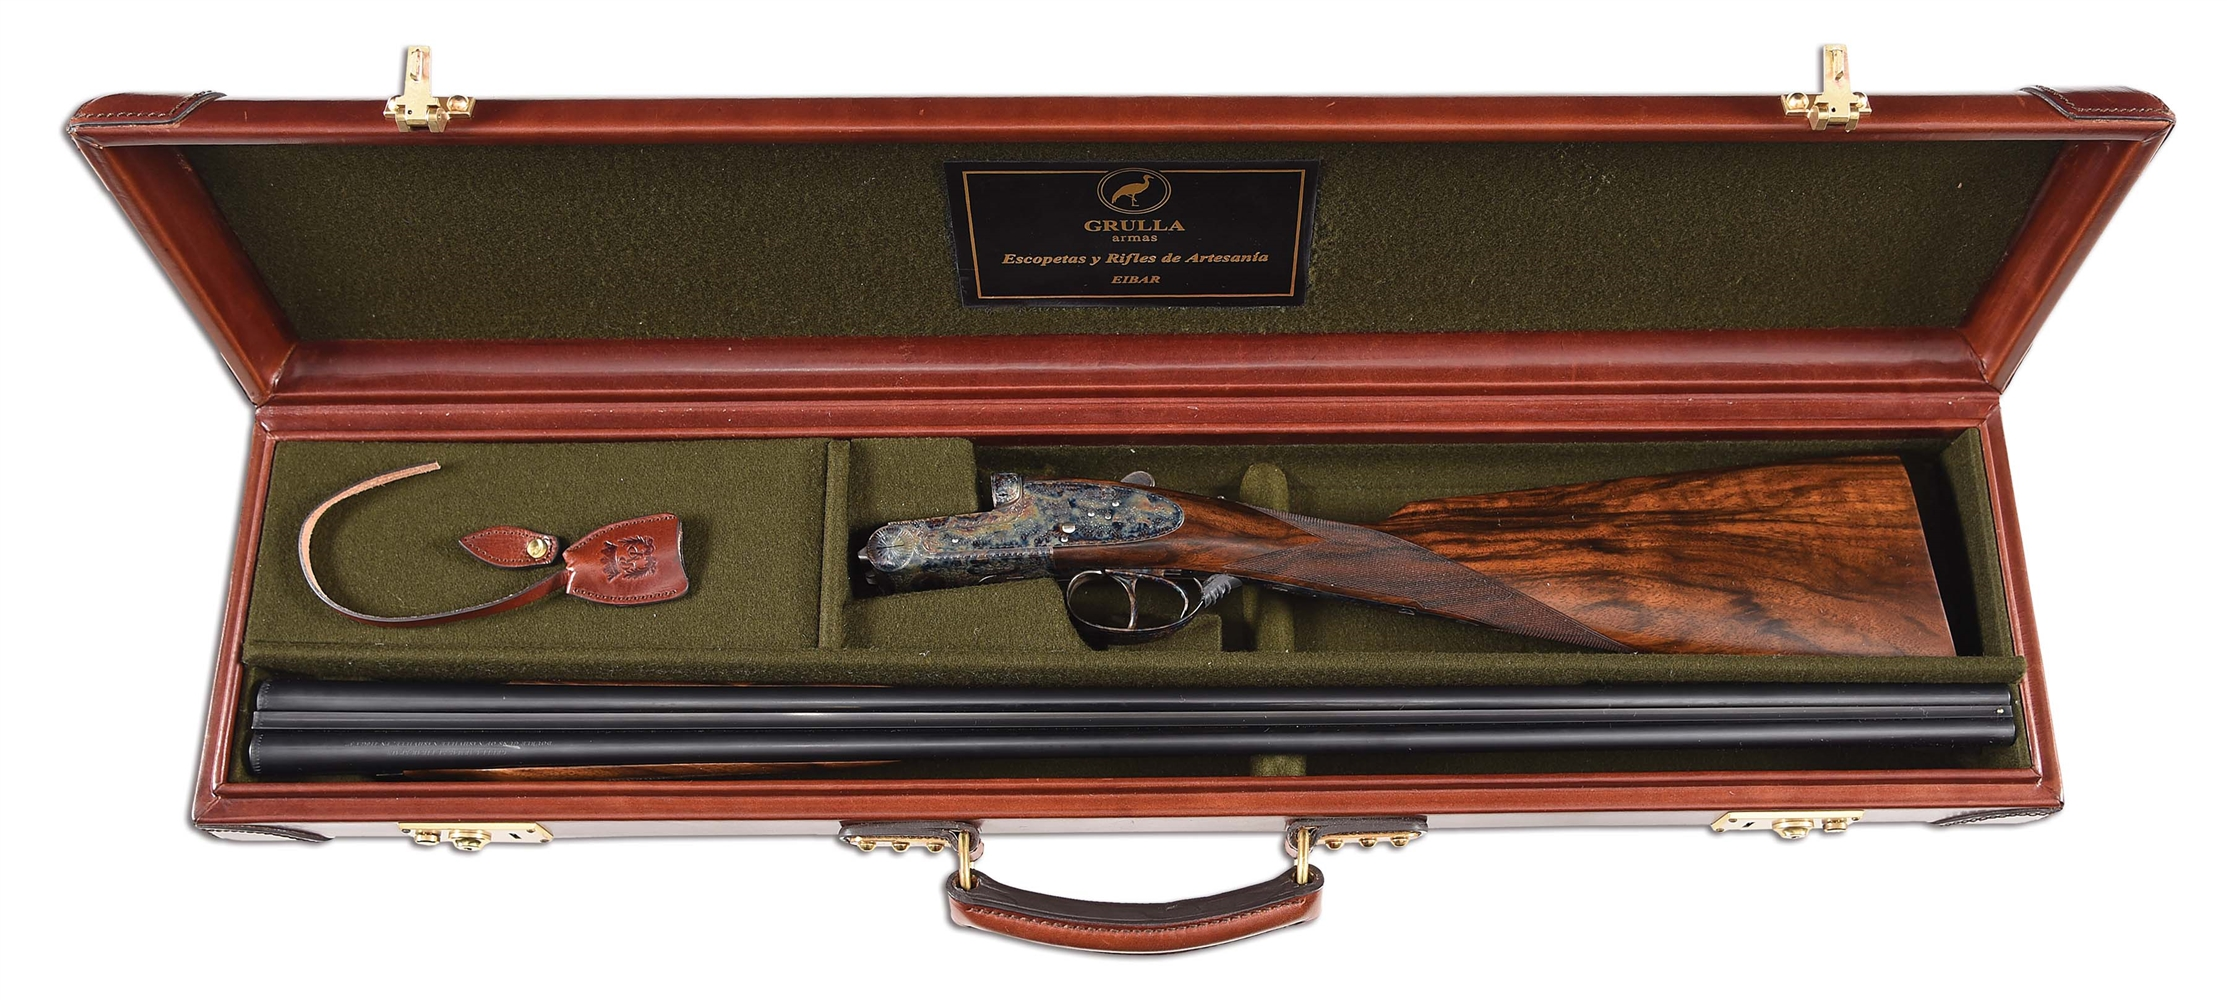 (M) CASED GRULLA ARMAS 216RB SIDE BY SIDE .410 BORE SHOTGUN.